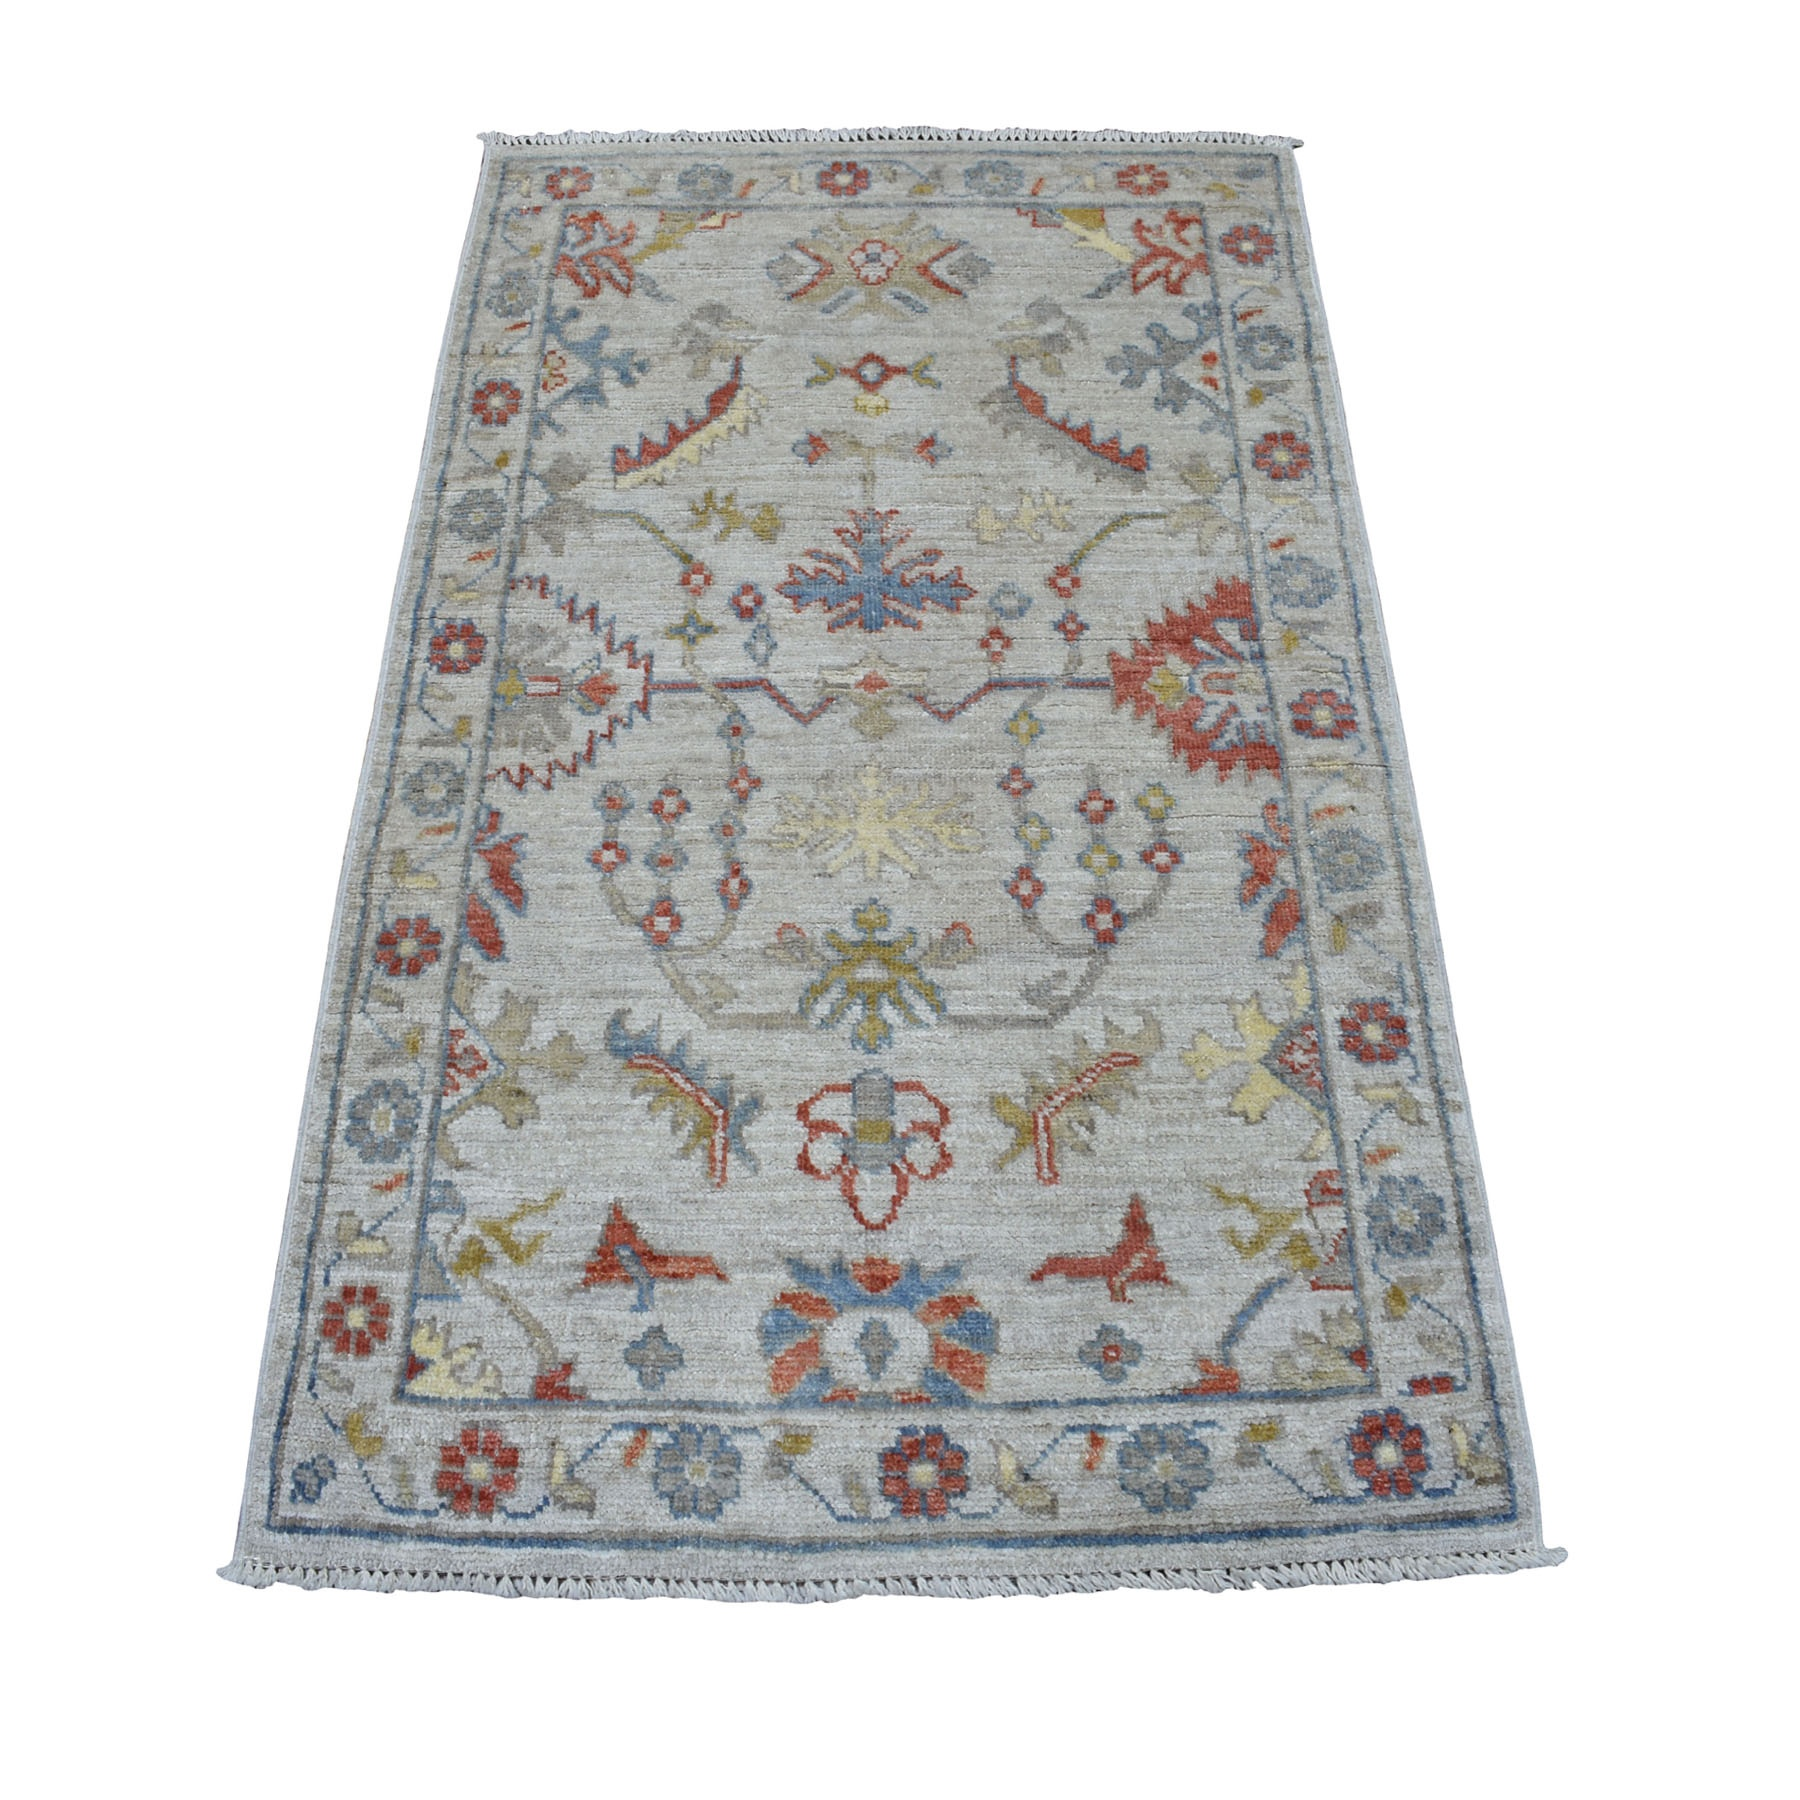 "3'X4'10"" Gray Angora Oushak With Soft Velvety Wool Hand Knotted Oriental Rug moaec60a"